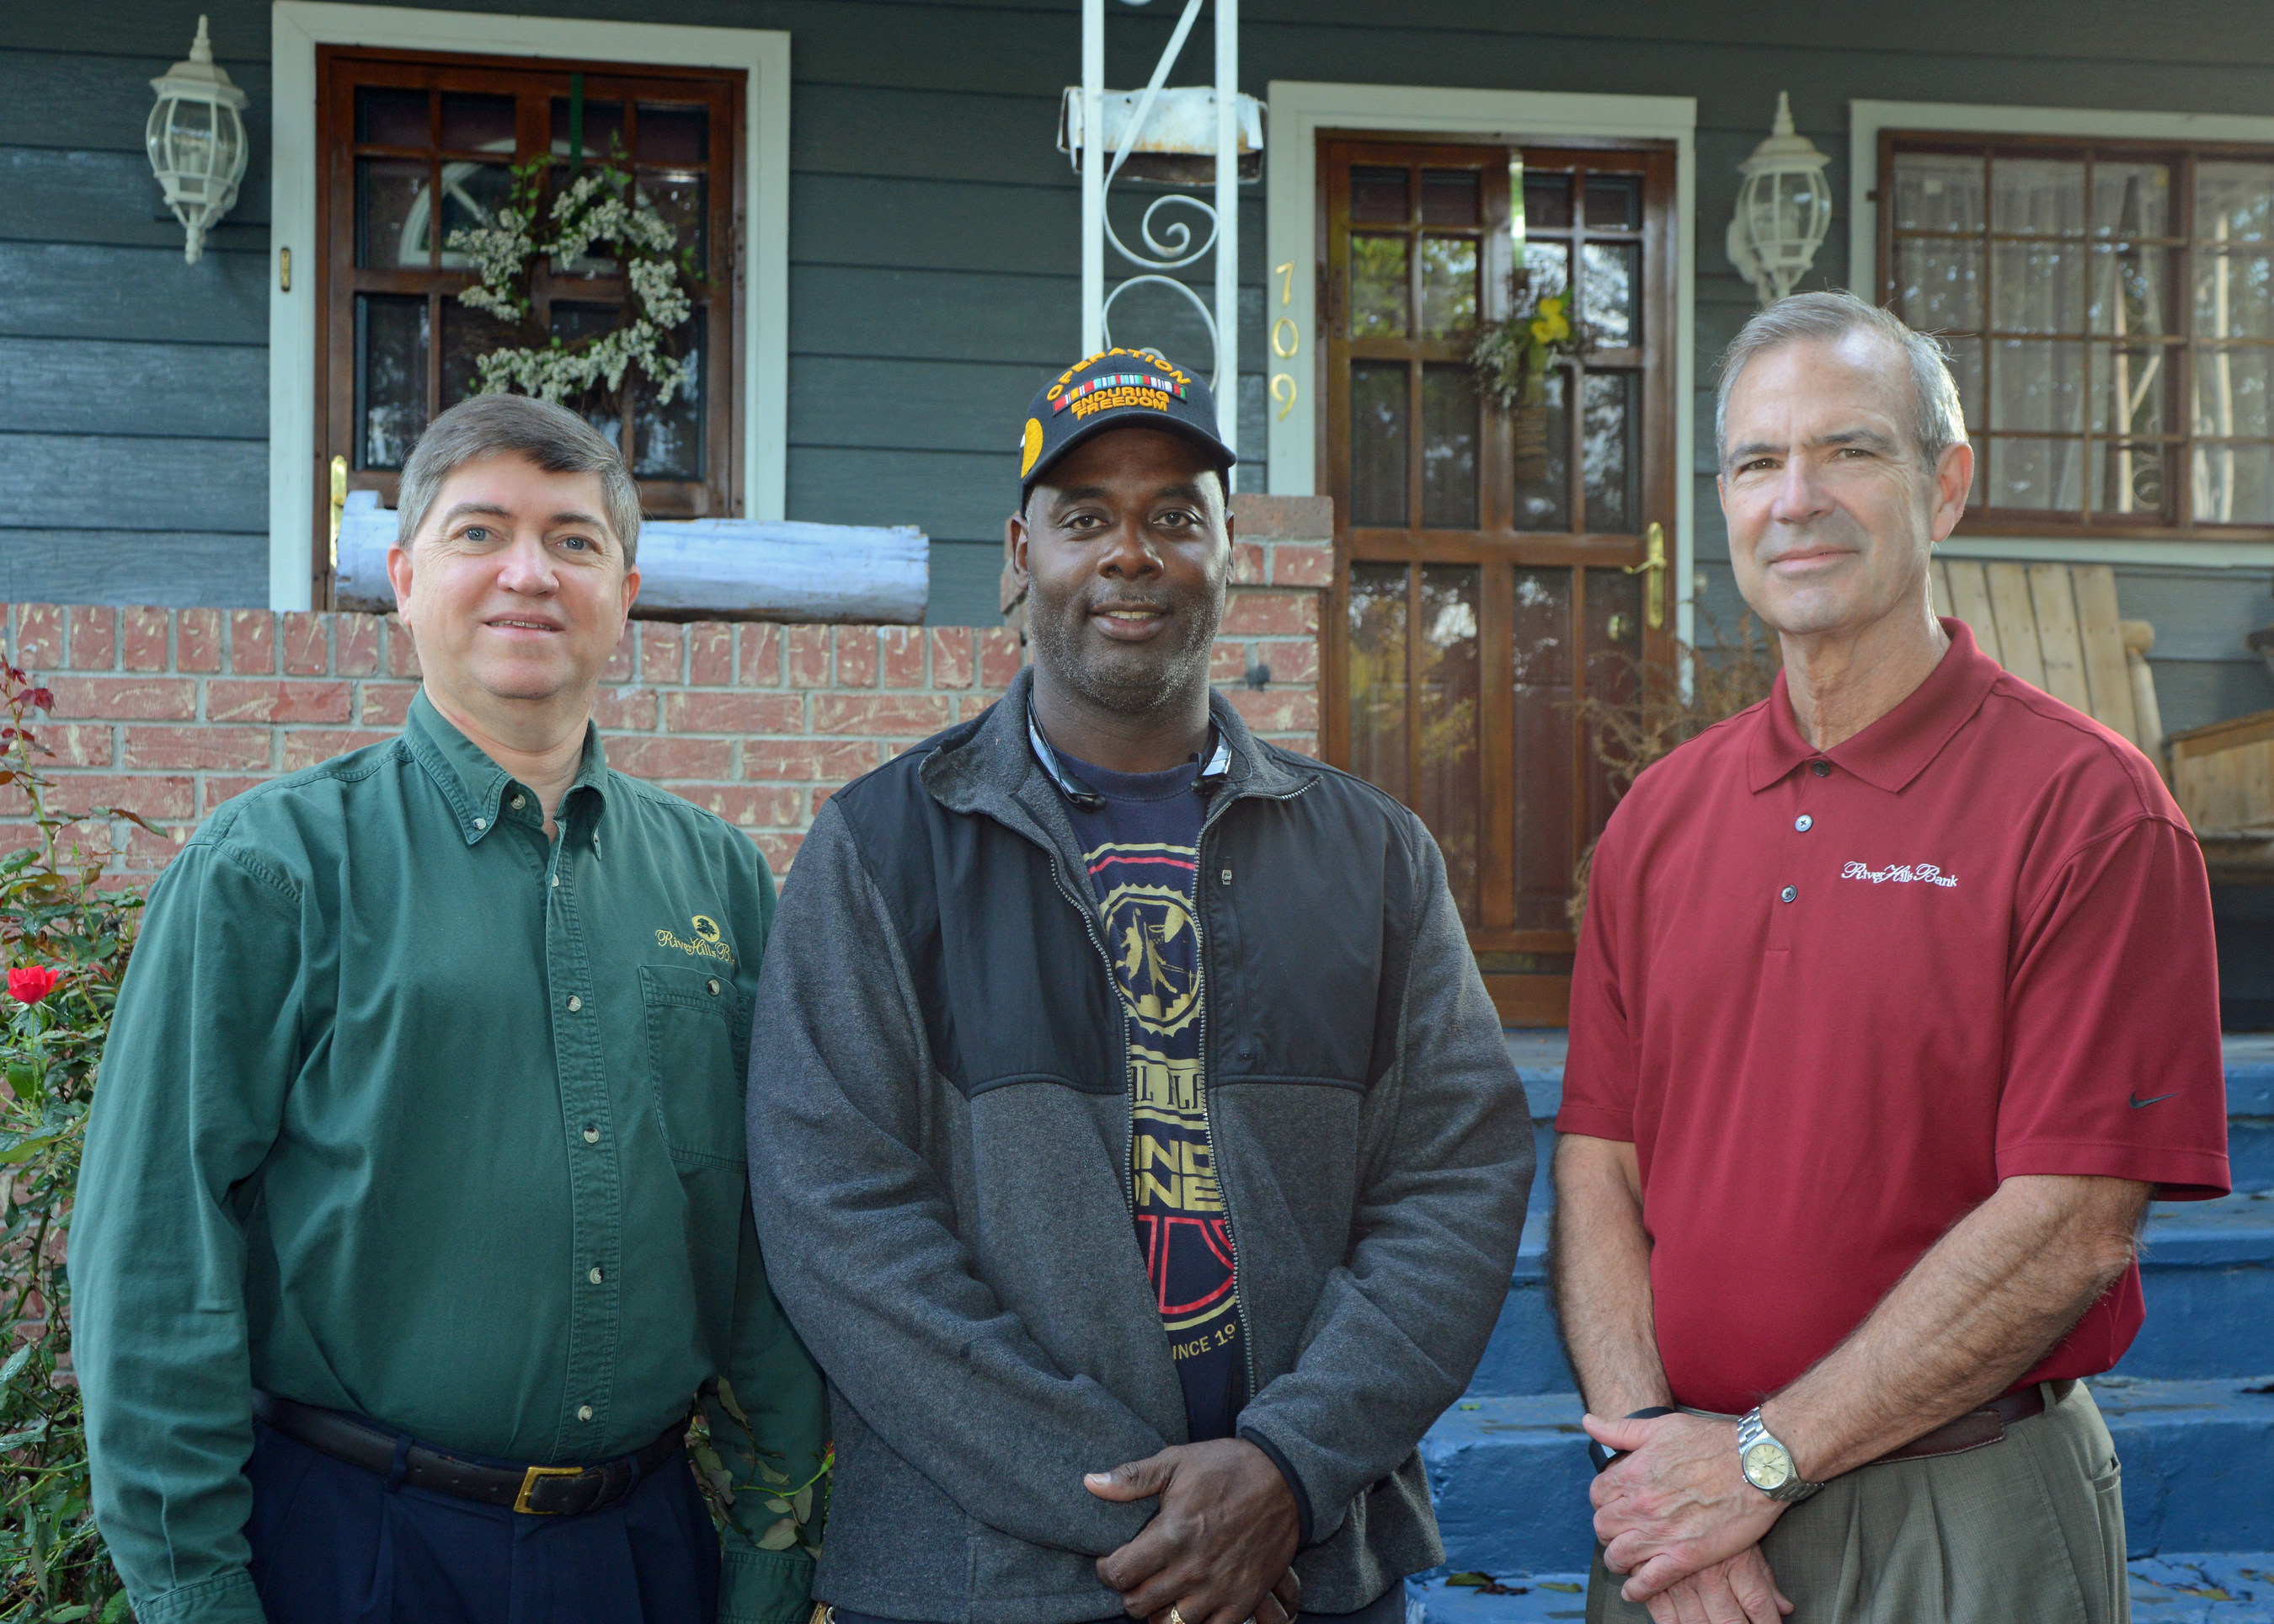 RiverHills Vice President David Blackledge (left) and RiverHills President and COO Joel Horton (right) with HAVEN grant recipient Steven Williams. Mr. Williams, a Navy veteran, received a $7,500 HAVEN grant from RiverHills Bank and the Federal Home Loan Bank of Dallas to make a number of home repairs.